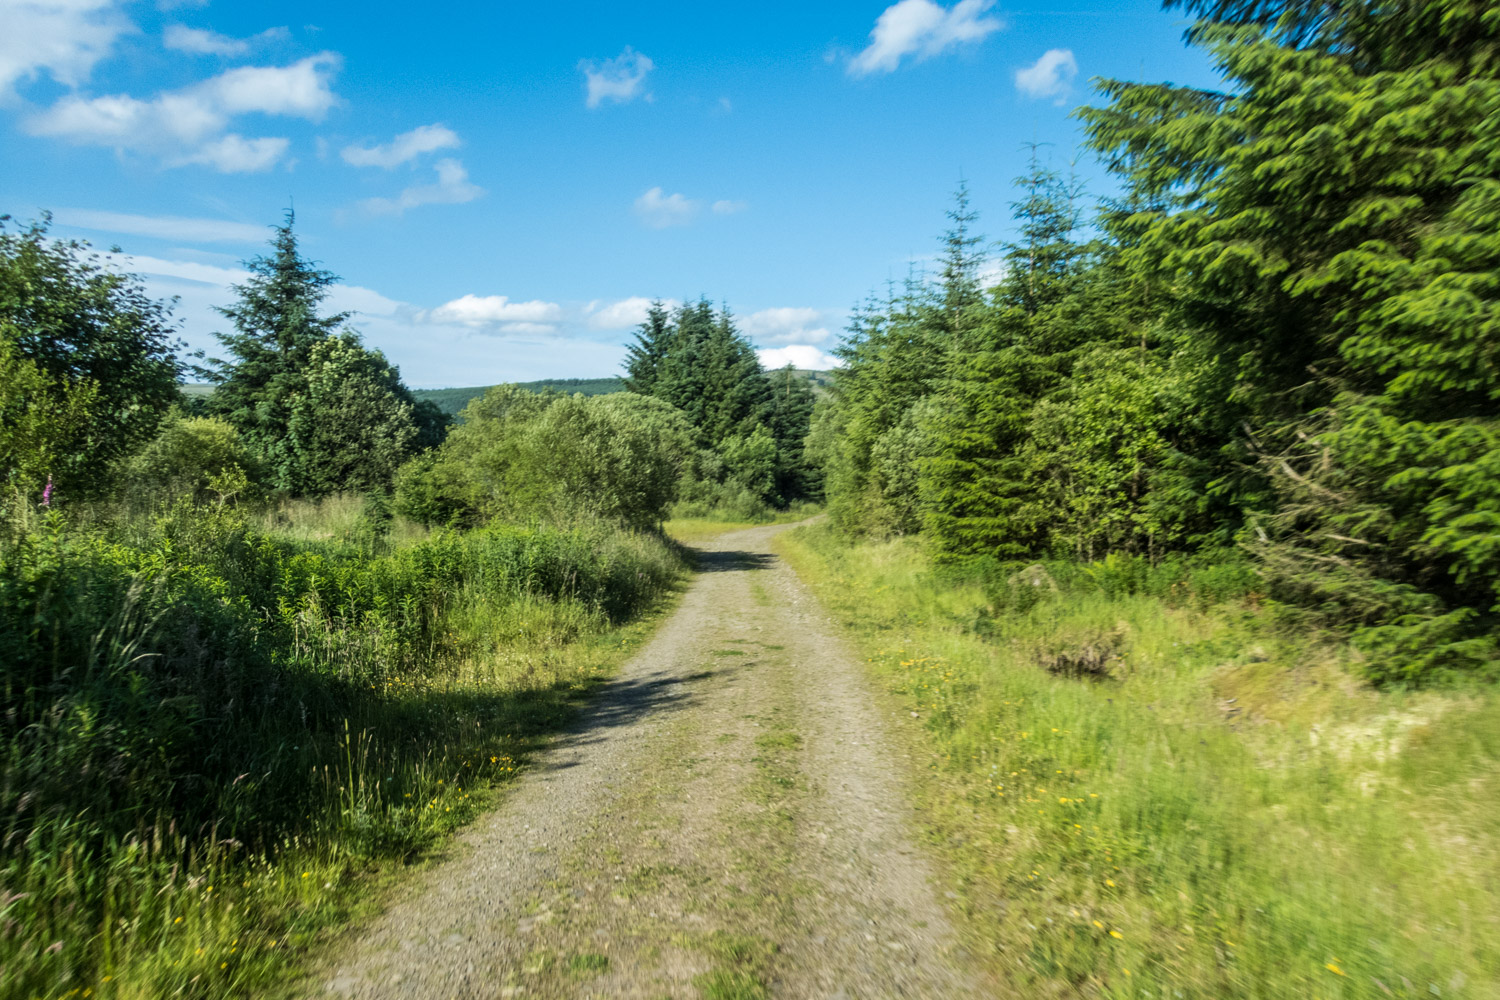 There are miles of forest tracks like this around Carron Valley.